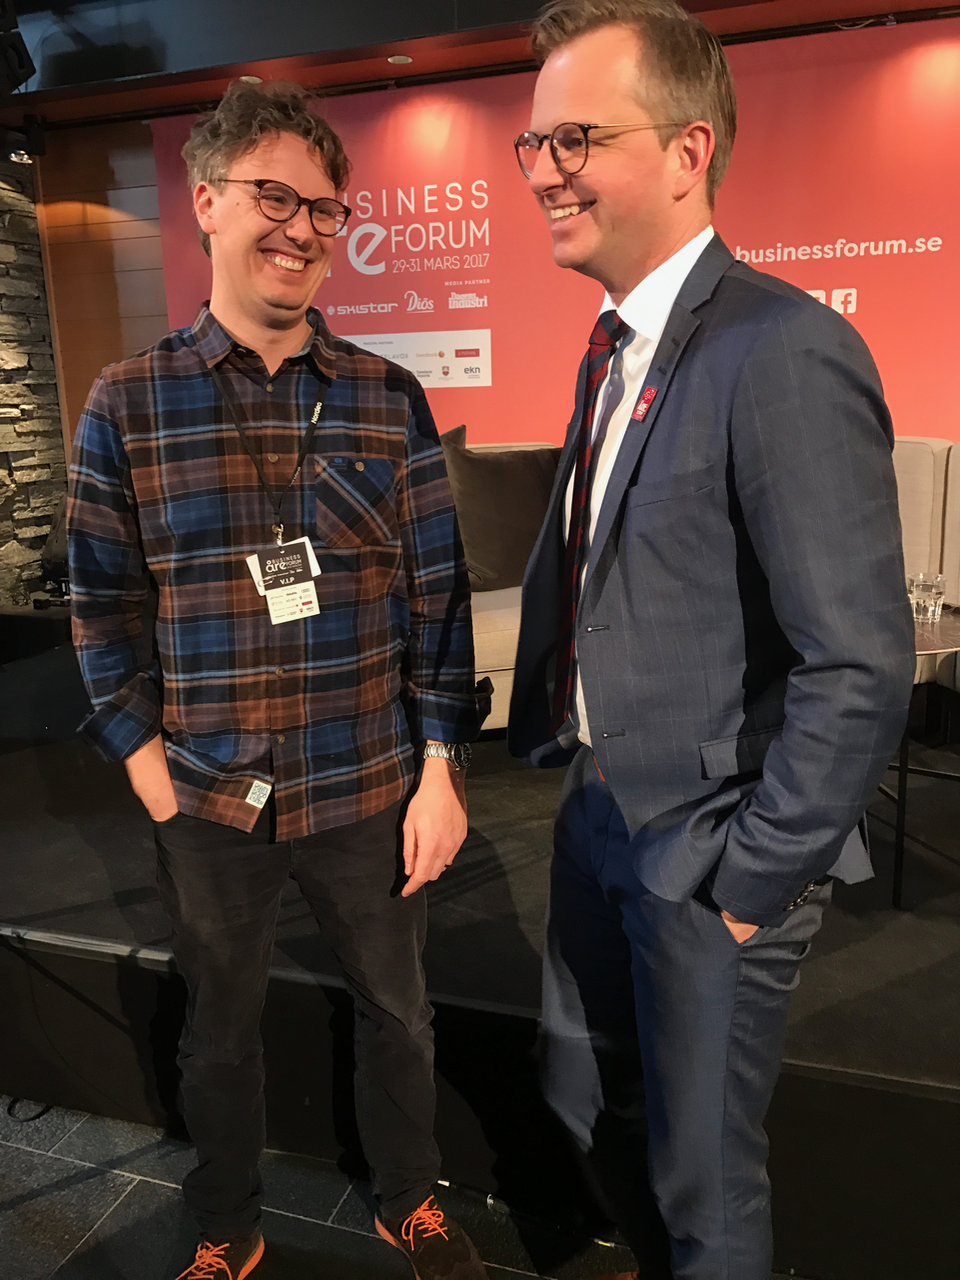 Co-Founder Andreas Eriksson trading glasses with Minister for Enterprise and Innovation Mikael Damberg (It's true, they've actually traded glasses). We call it exchanging visions...